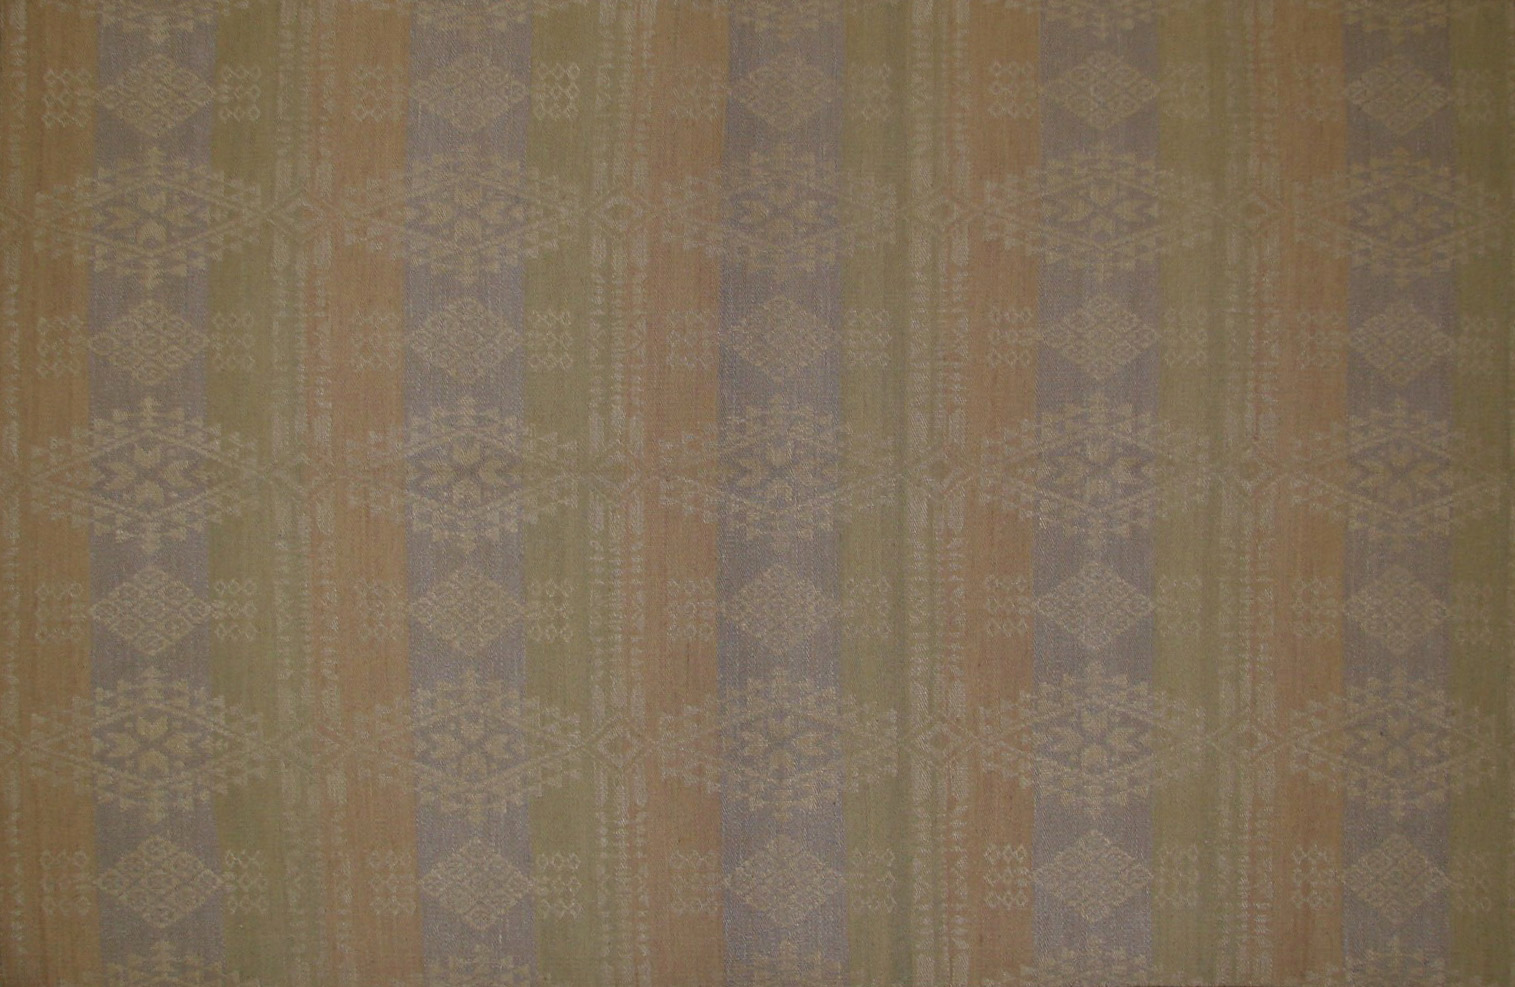 6x9 Flat Weave Hand Knotted Wool Area Rug - MR21029